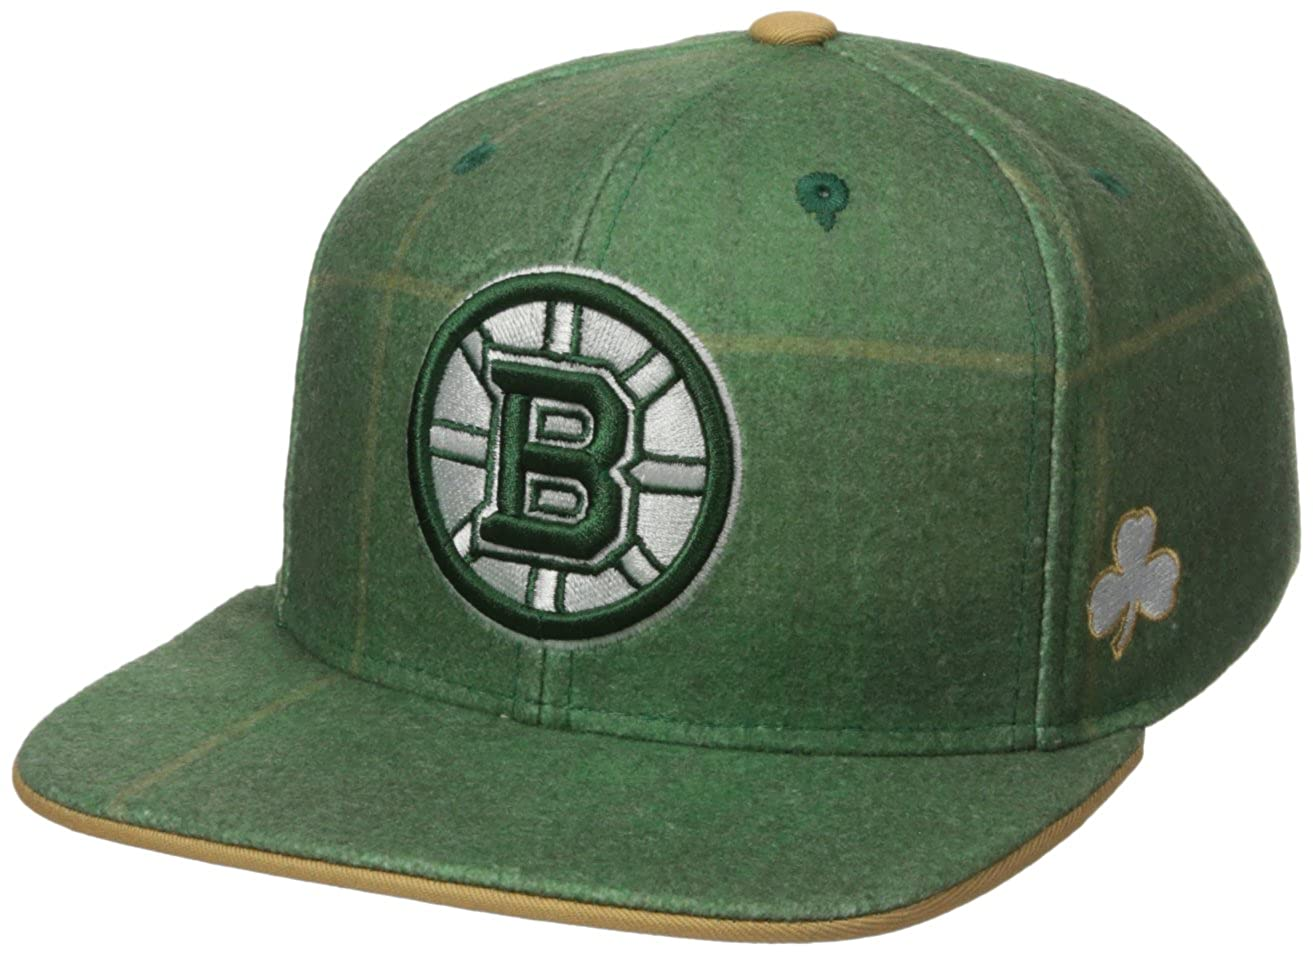 Patricks Day Plaid Flat Brim Snapback Hat Reebok NHL Mens NHL SP17 St